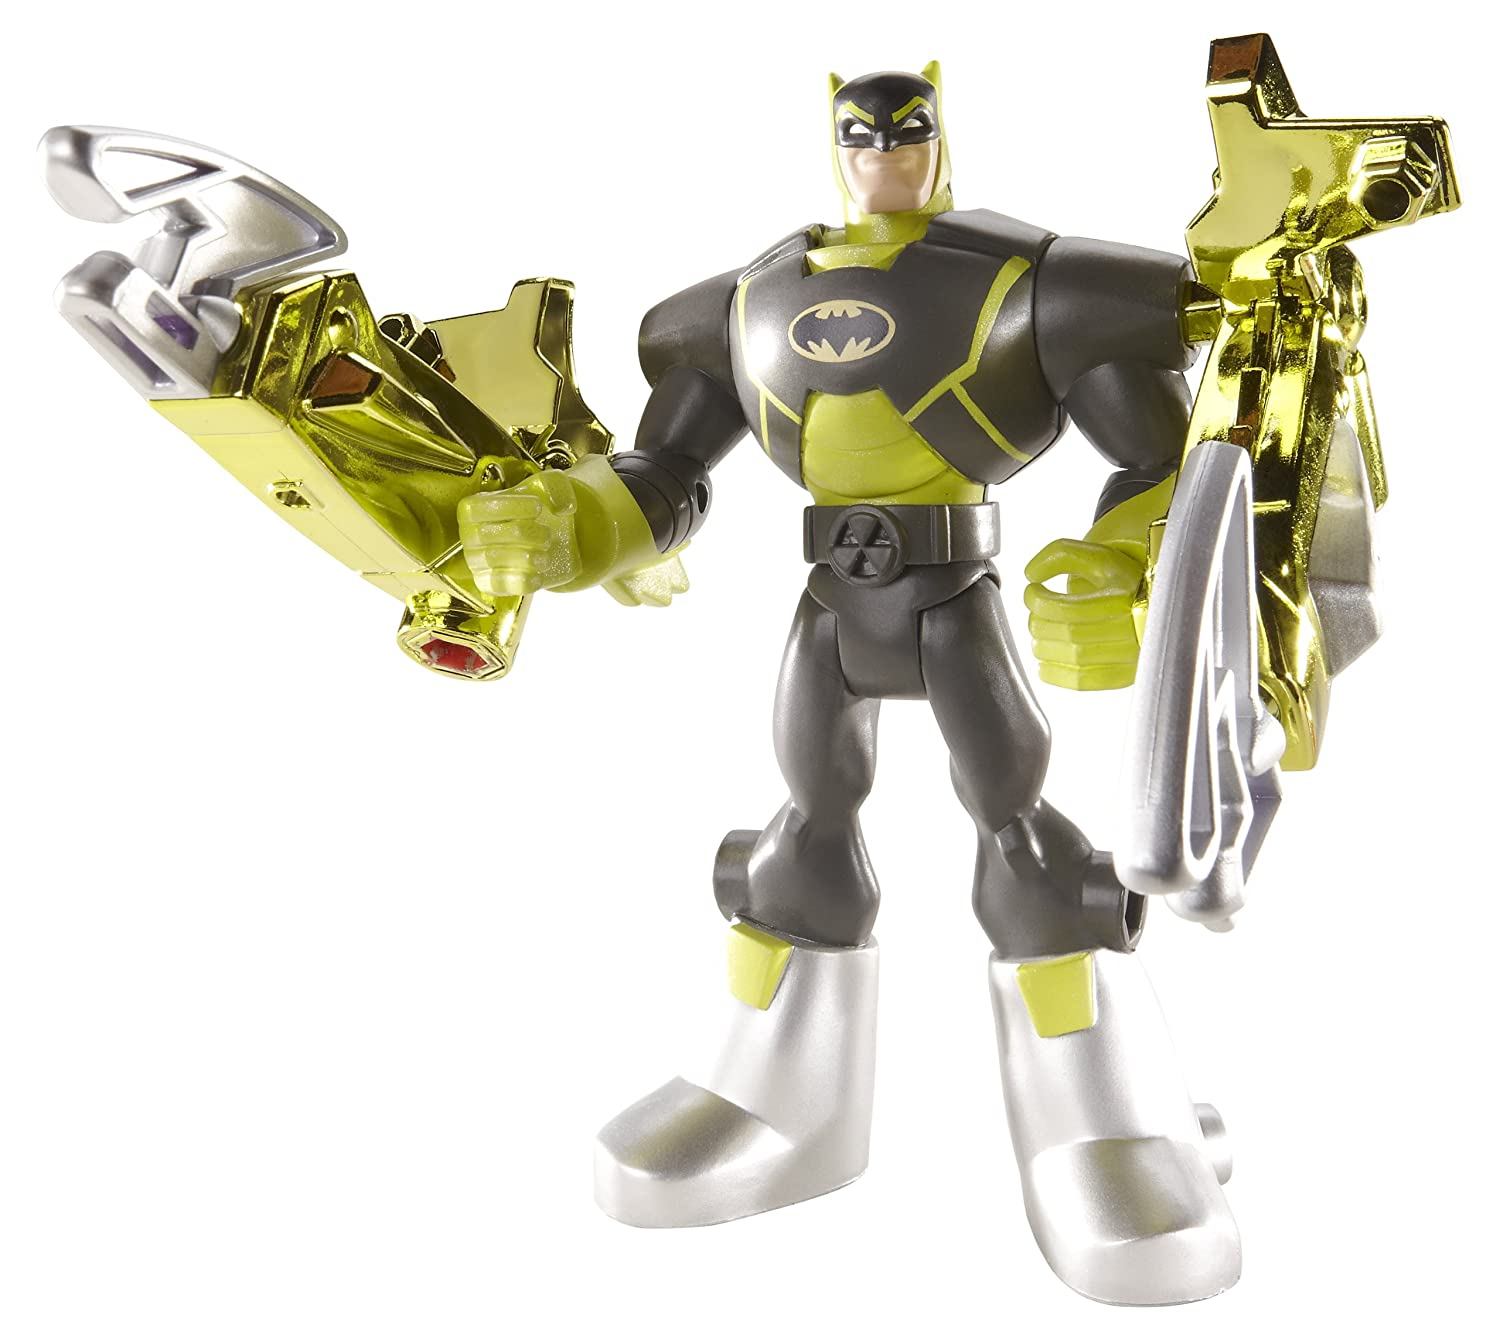 Batman: The Brave and the Bold Deluxe Battle Claw Batman Figure by Mattel